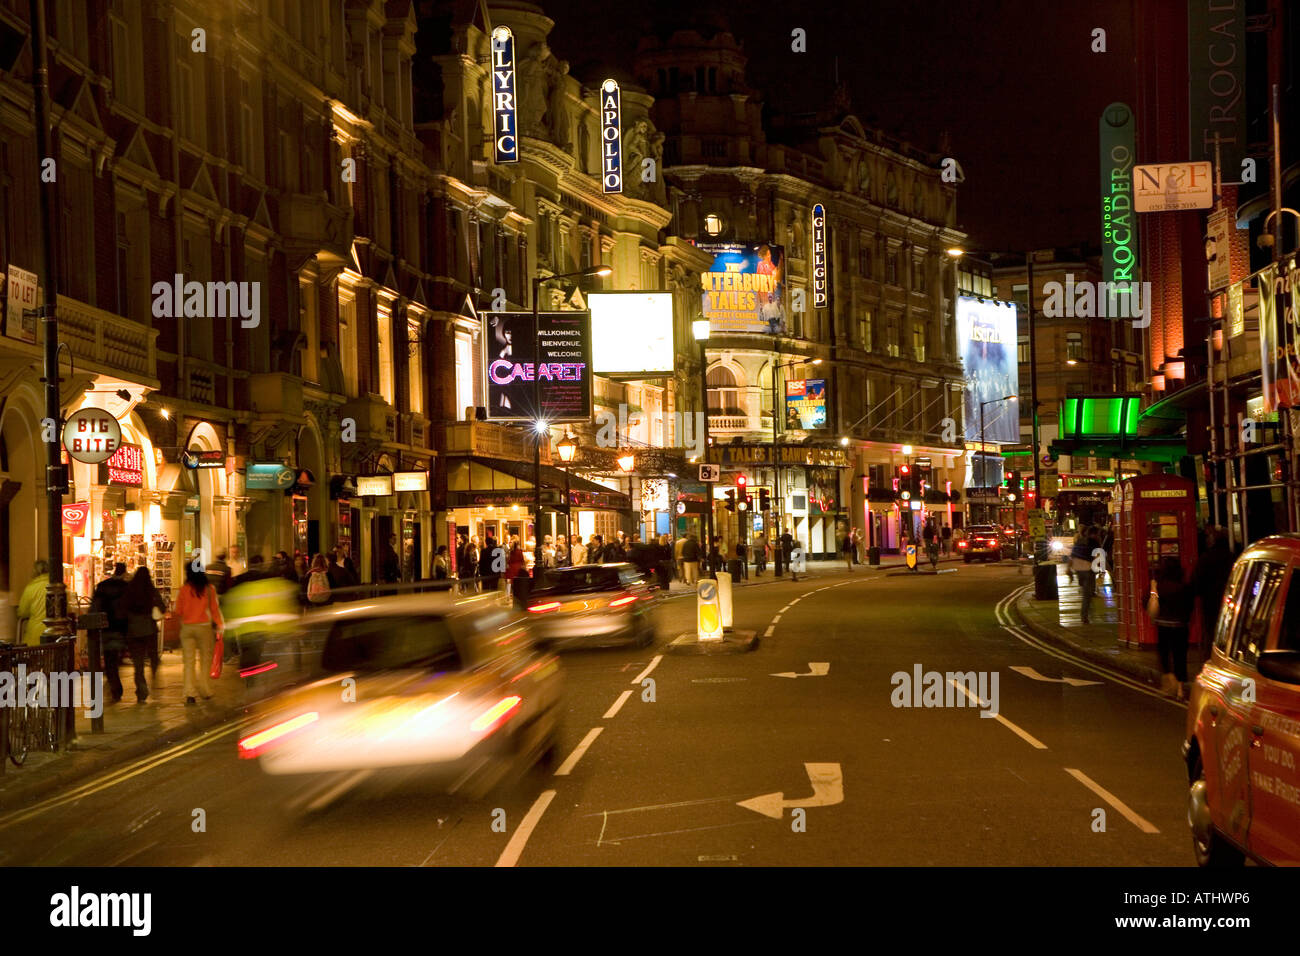 Shaftesbury Avenue London s theatreland - Stock Image